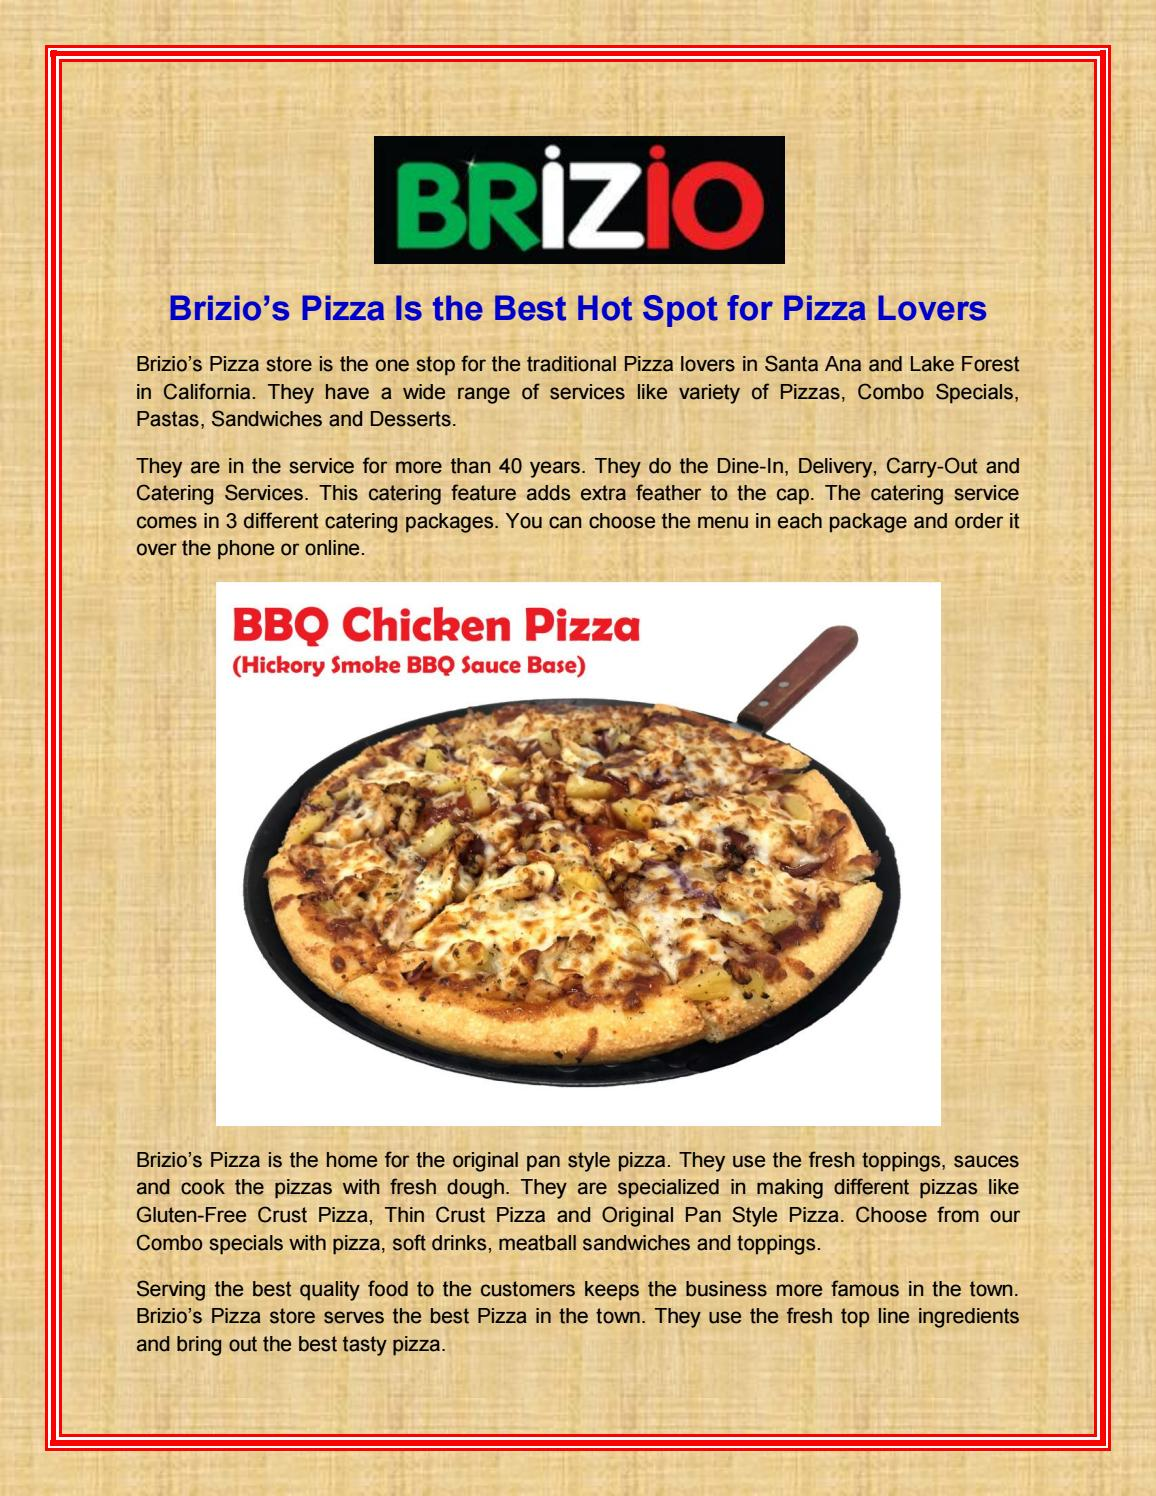 Brizio Pizza Is The Best Hot Spot For Pizza Lovers By Brizio Pizza Issuu